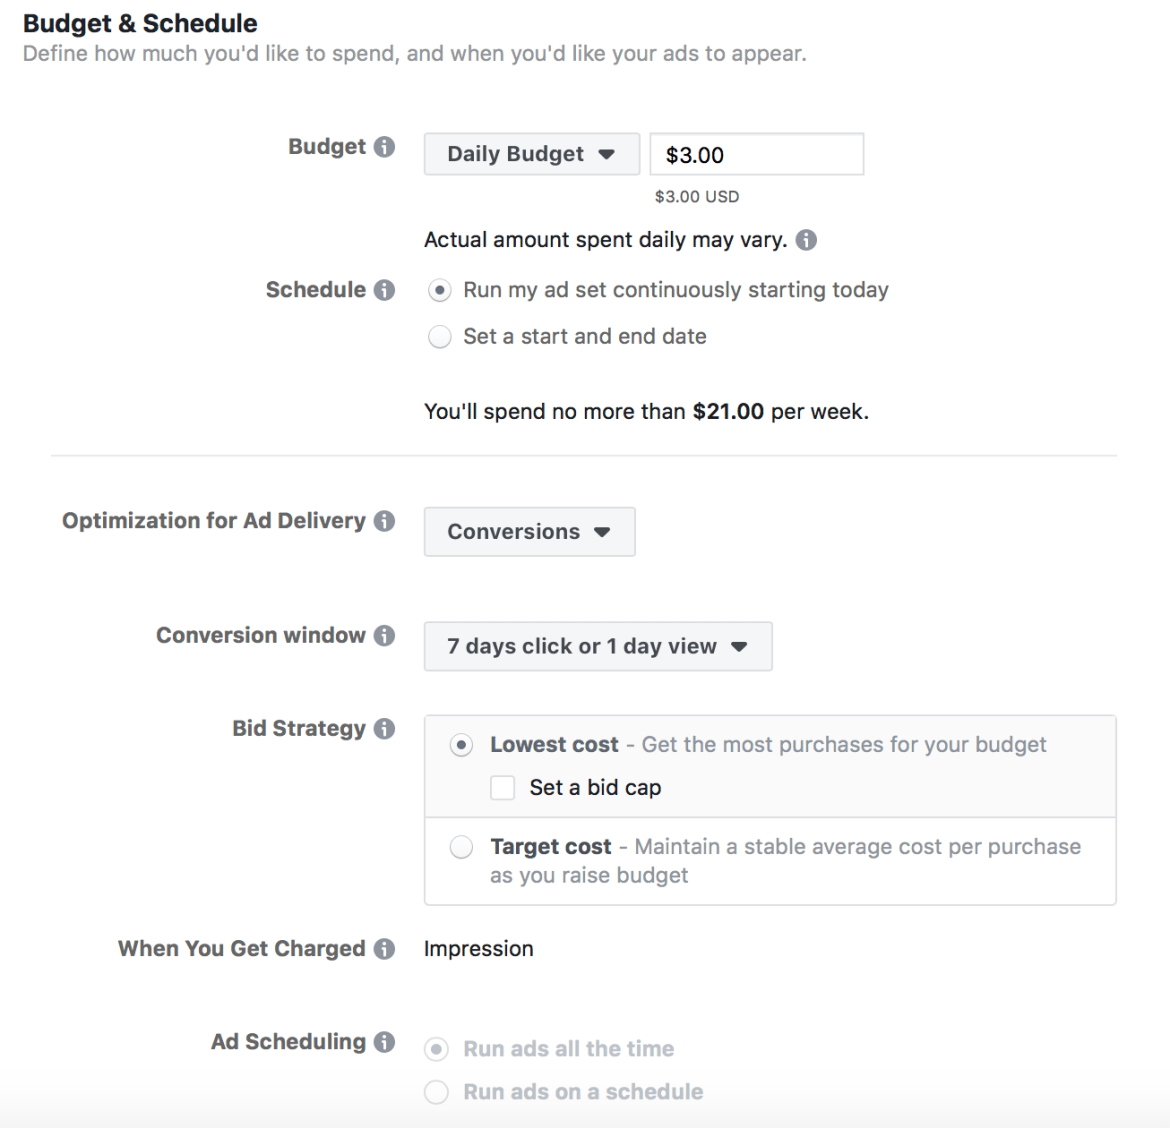 Budget and Schedule setting for ad set in Facebook ads manager